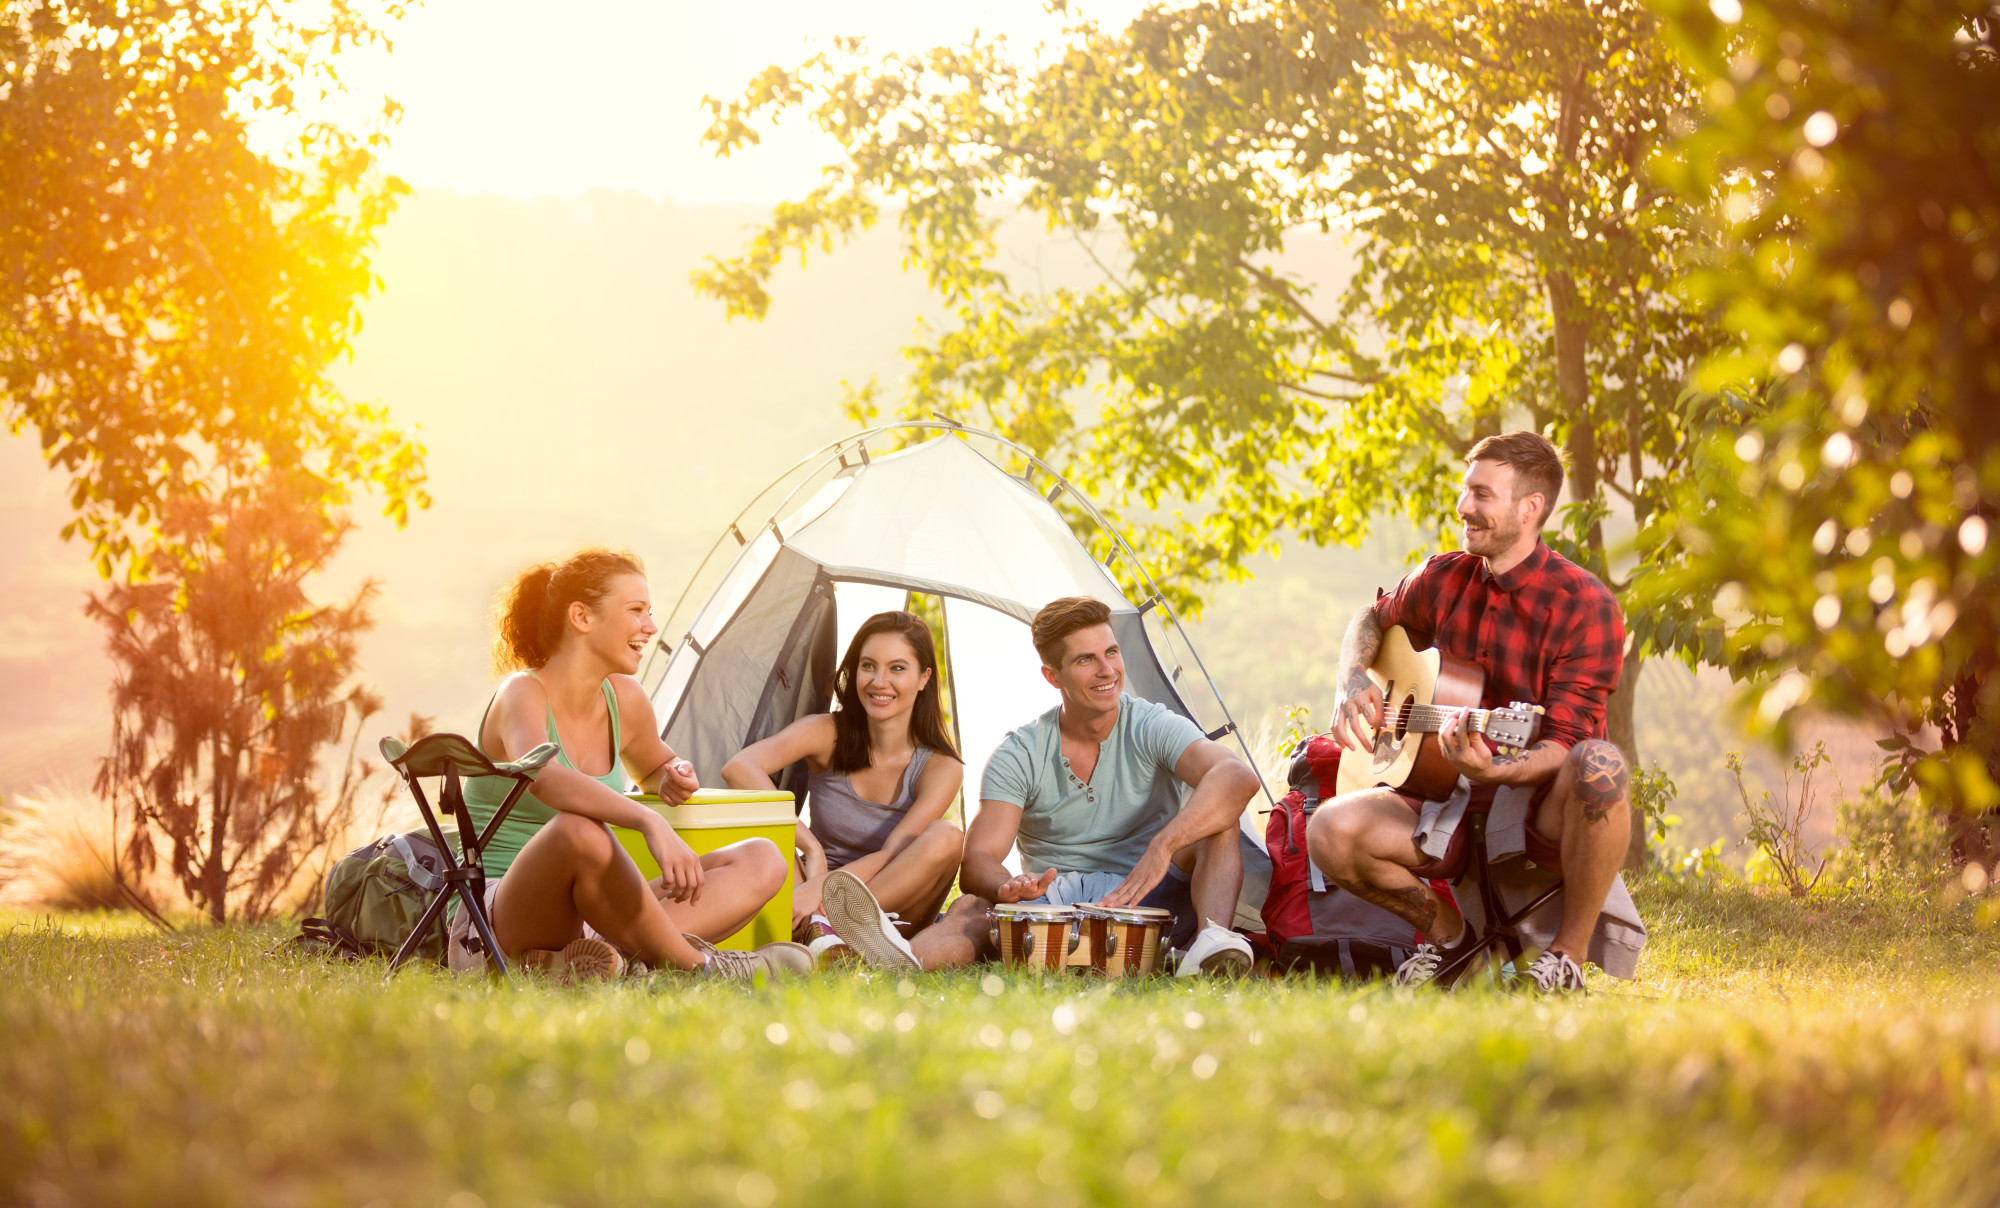 Camping Hacks: 5 Simple Ways to Improve Your Camping Experience - The  Purple Passport